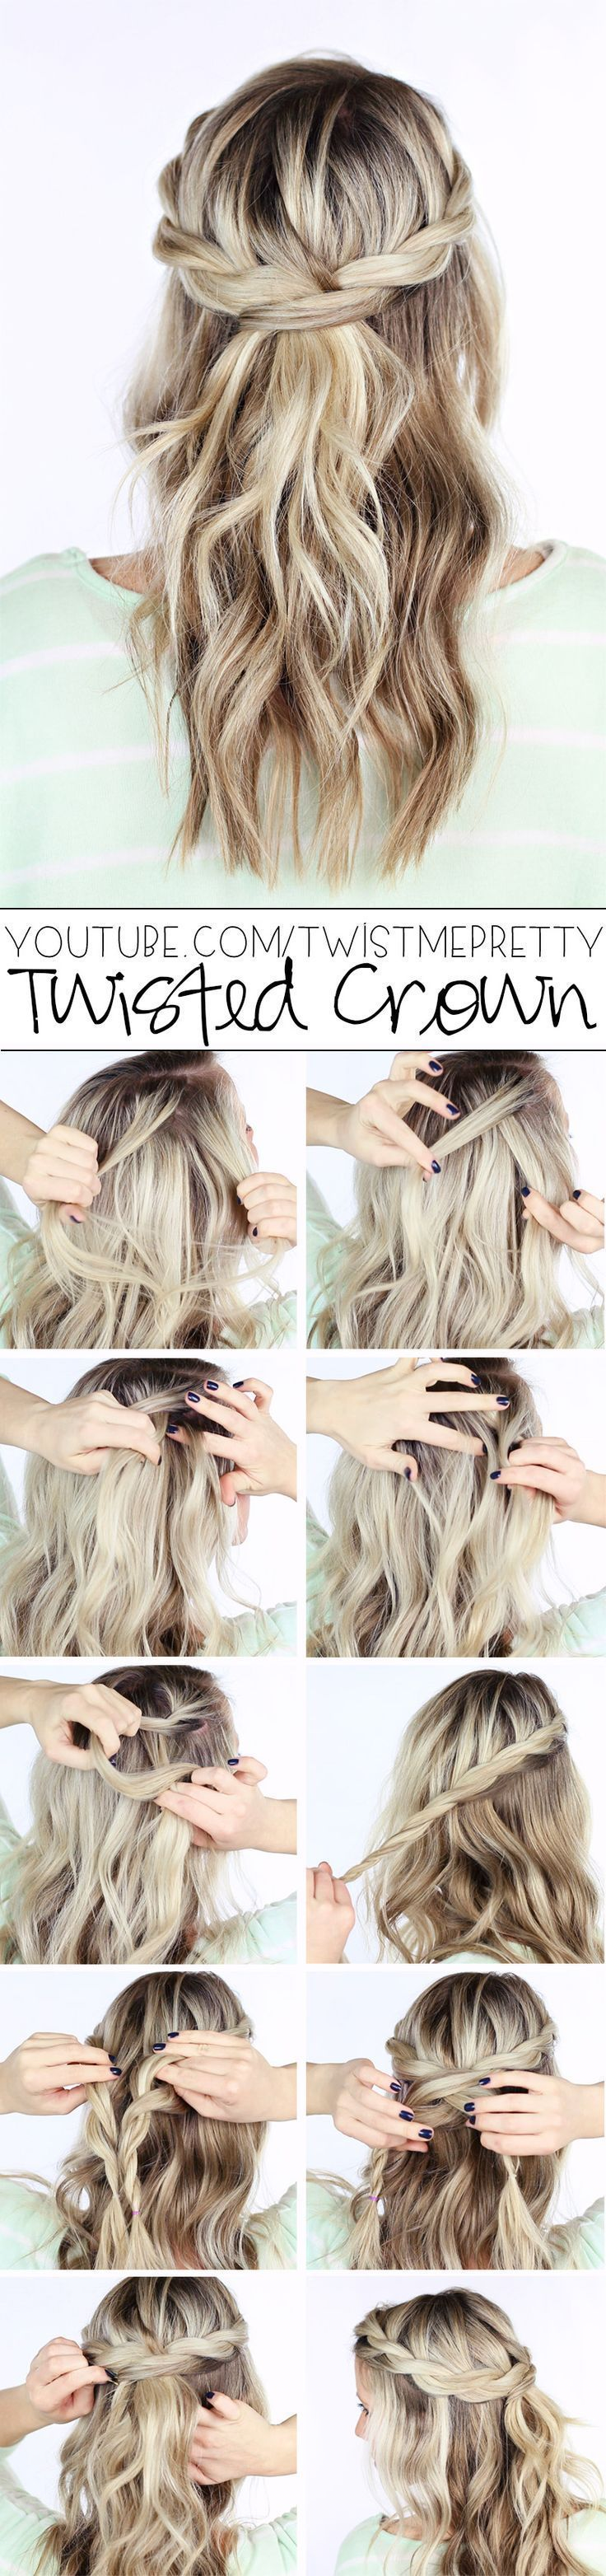 DIY Wedding Hairstyle - Twisted crown braid half up half down hairstyle - Deer Pearl Flowers